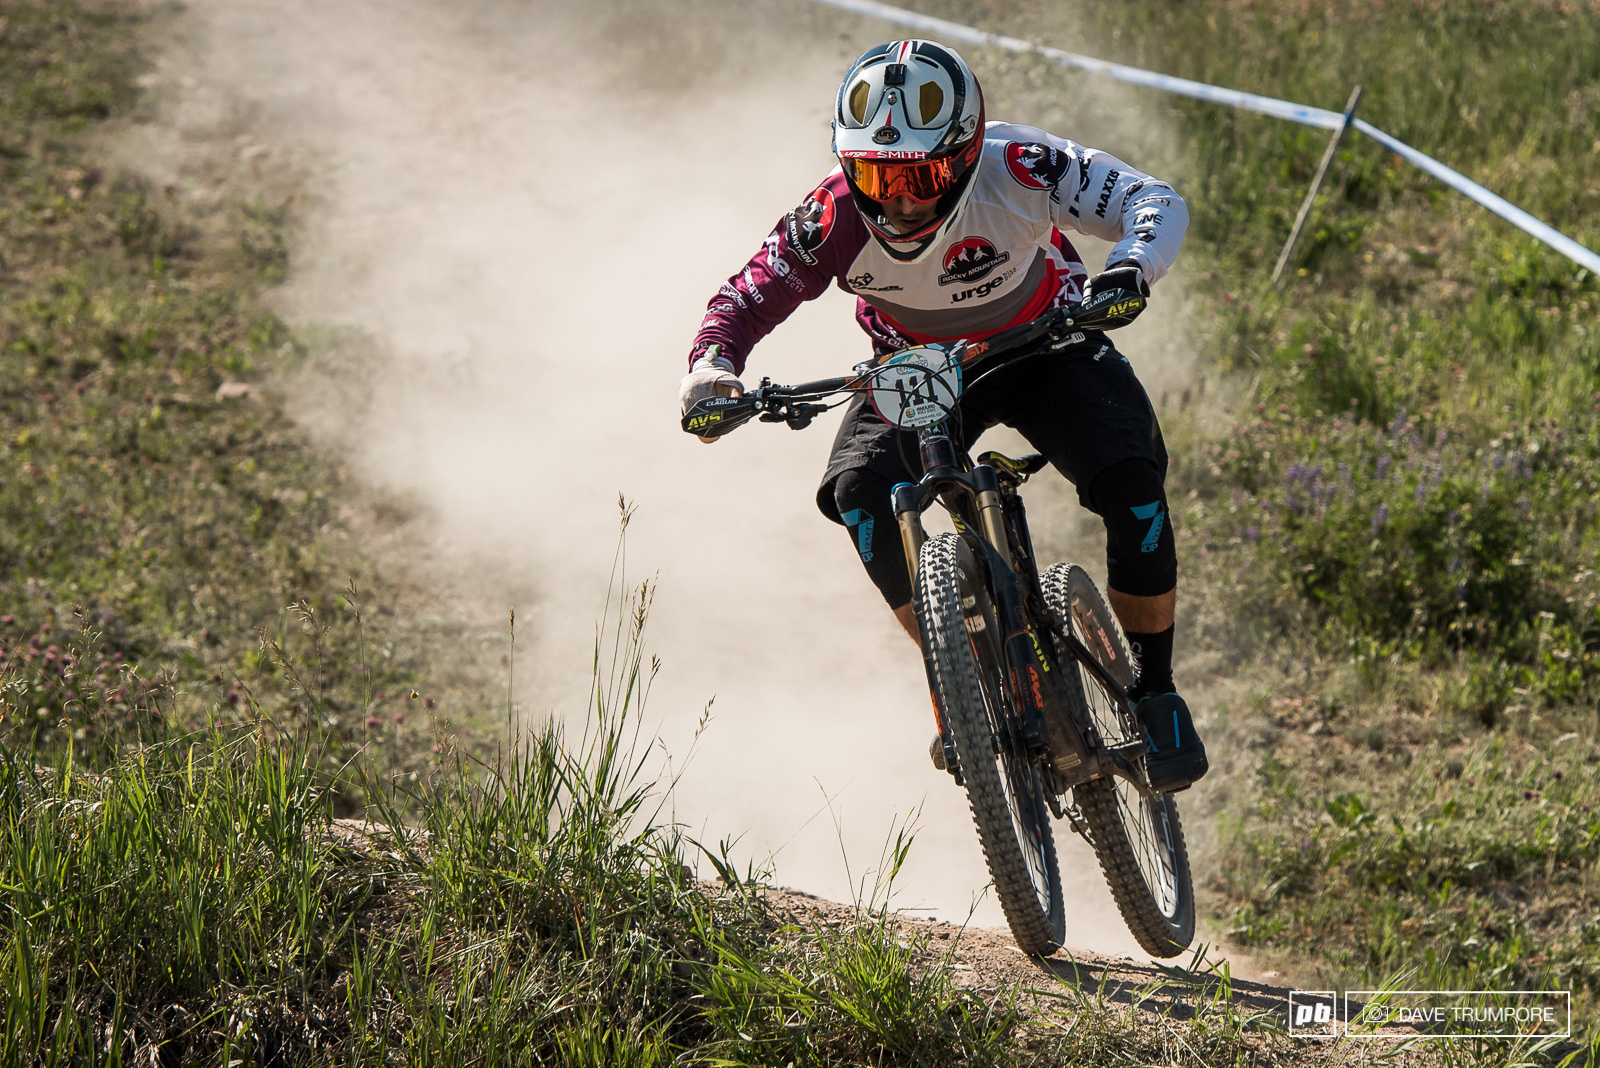 Seb Claquin pushed hard despite his injured hand for second in under-21 and for reference he still pulled a time good enough to match World Cup DH standout Sam Blenkinsop.